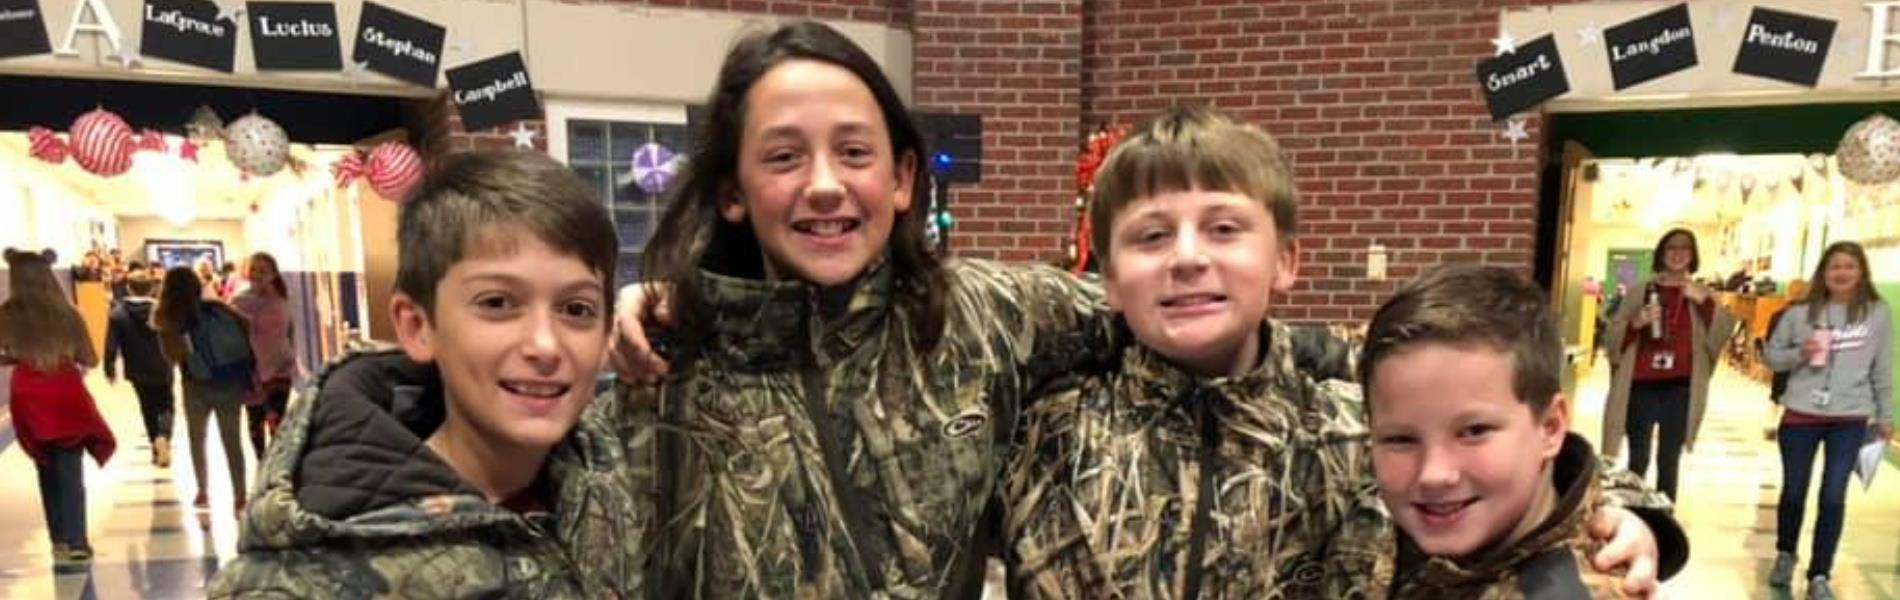 Boy students in camo